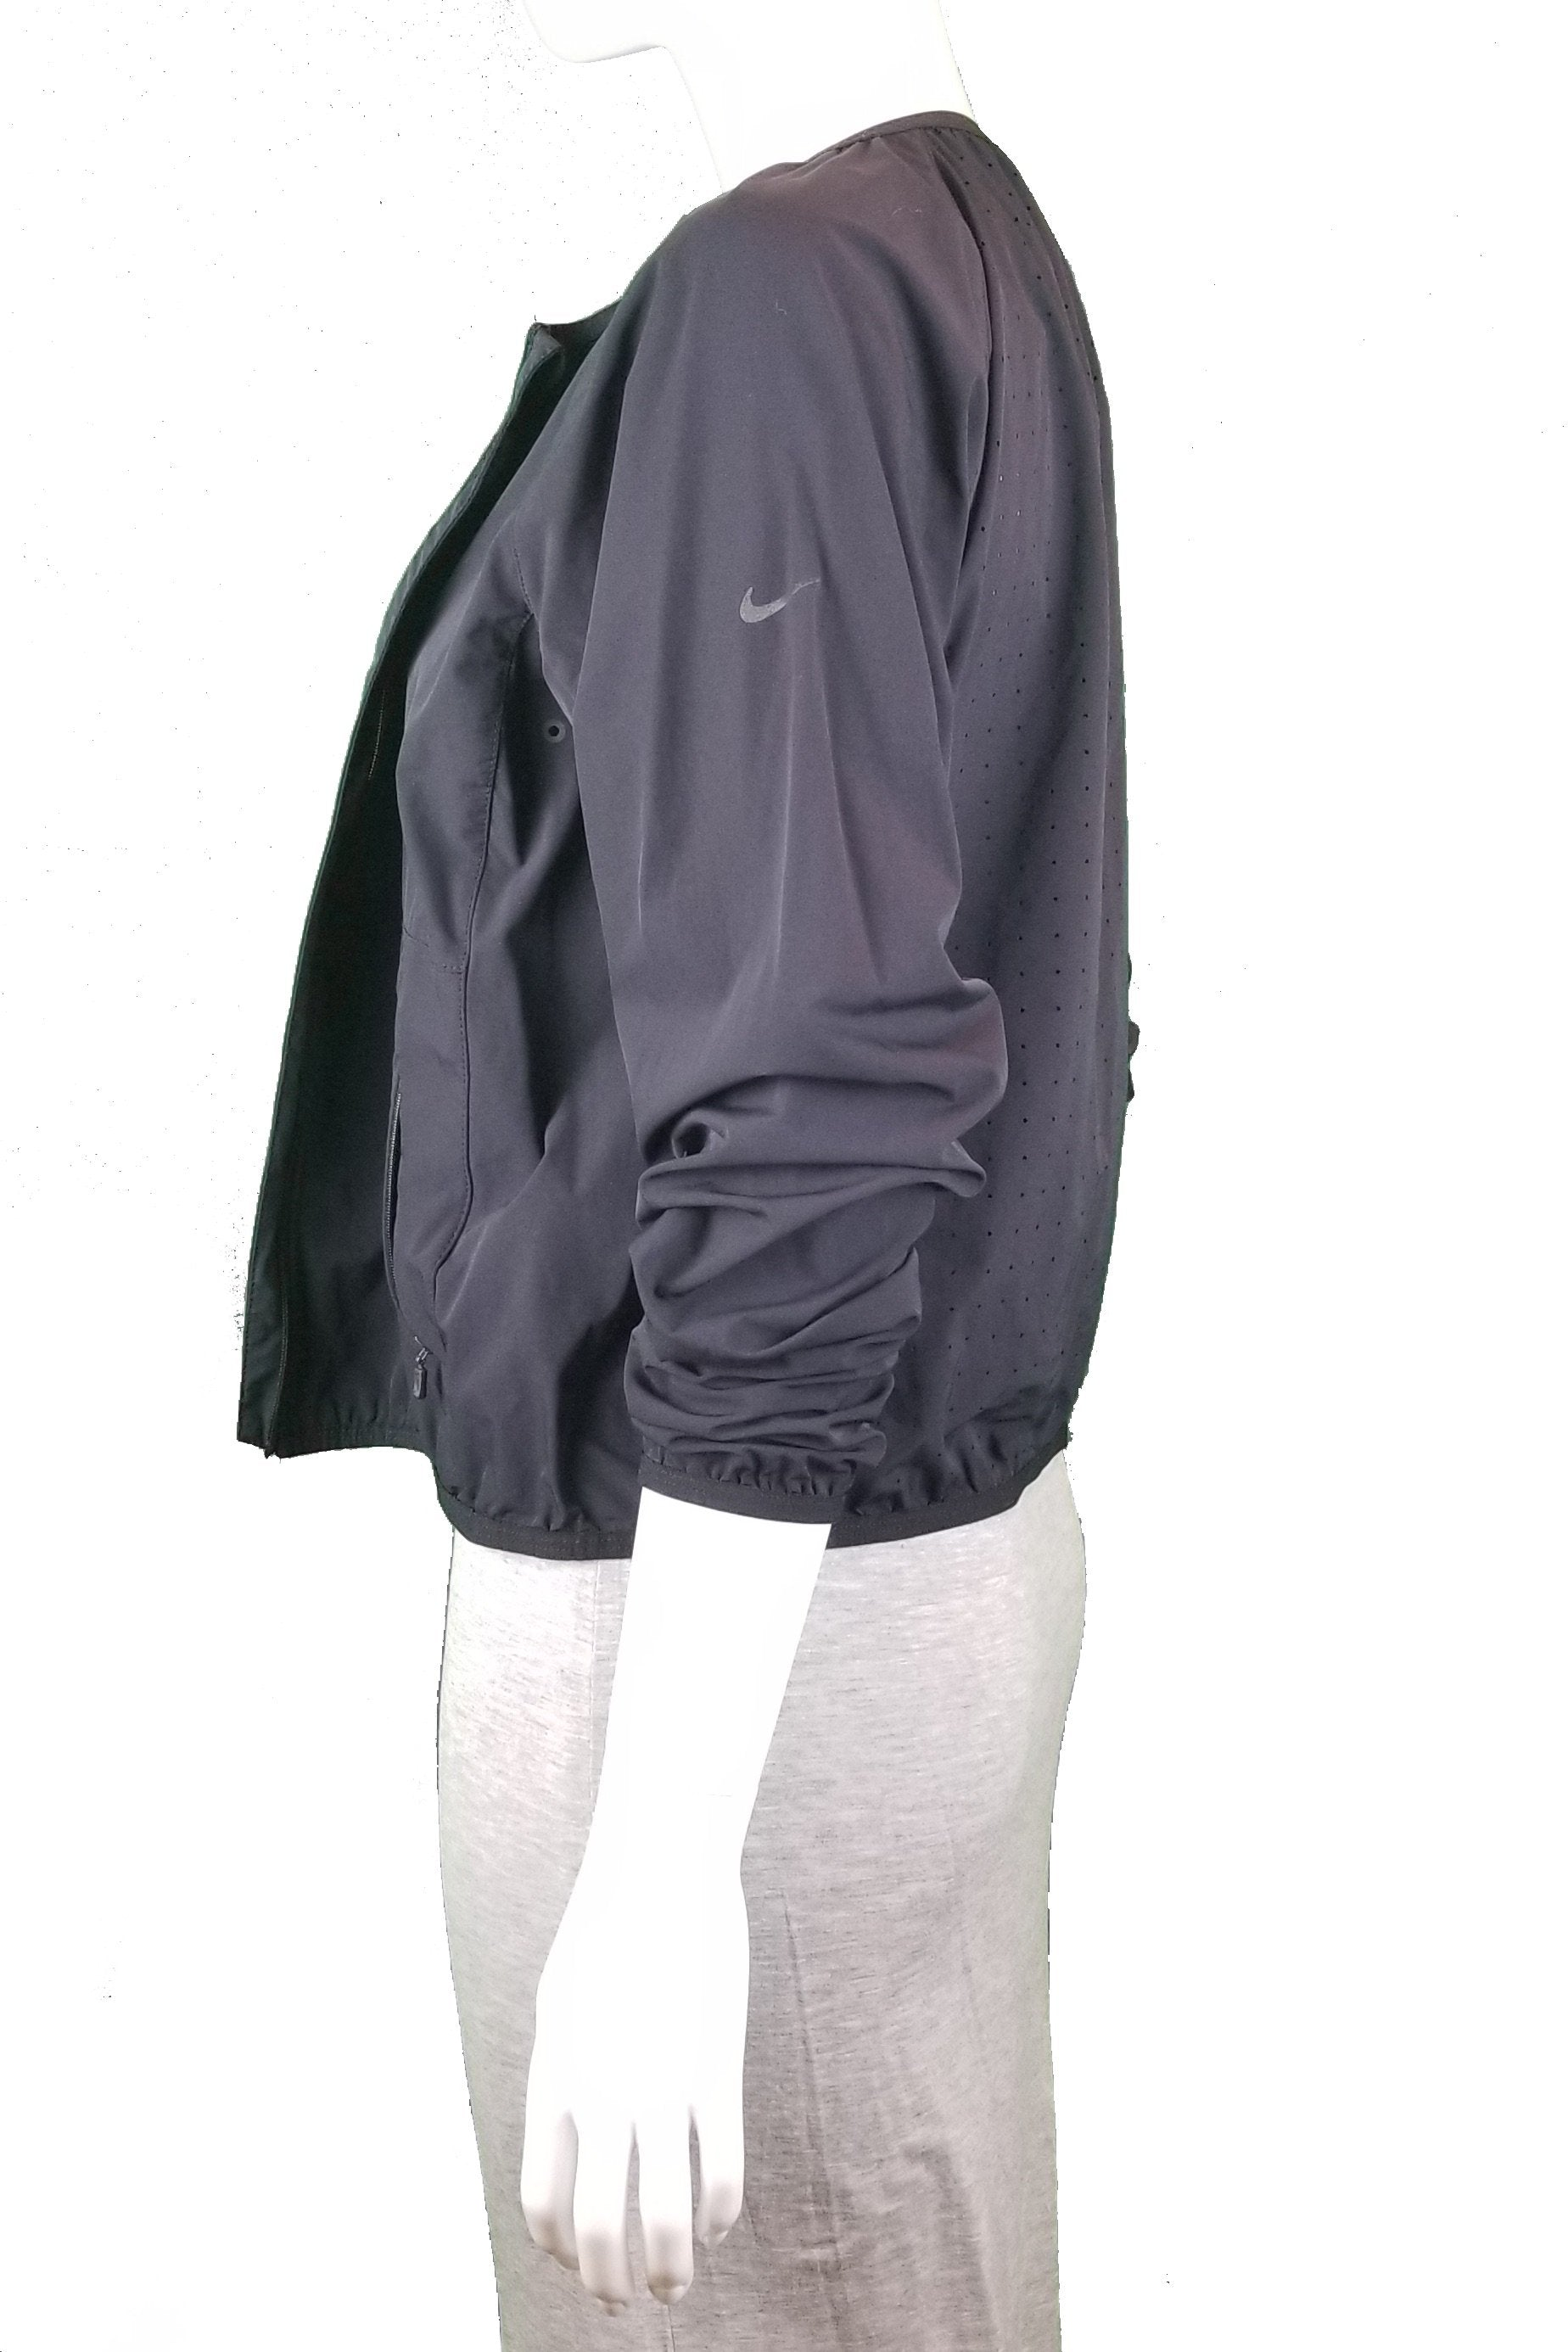 Nike Light Sport Jacket, Super light simple sport jacket that you can wear in various occasions, Black, 80% Nylon 20% Spandex, women's sport jacket, women's black sport jacket